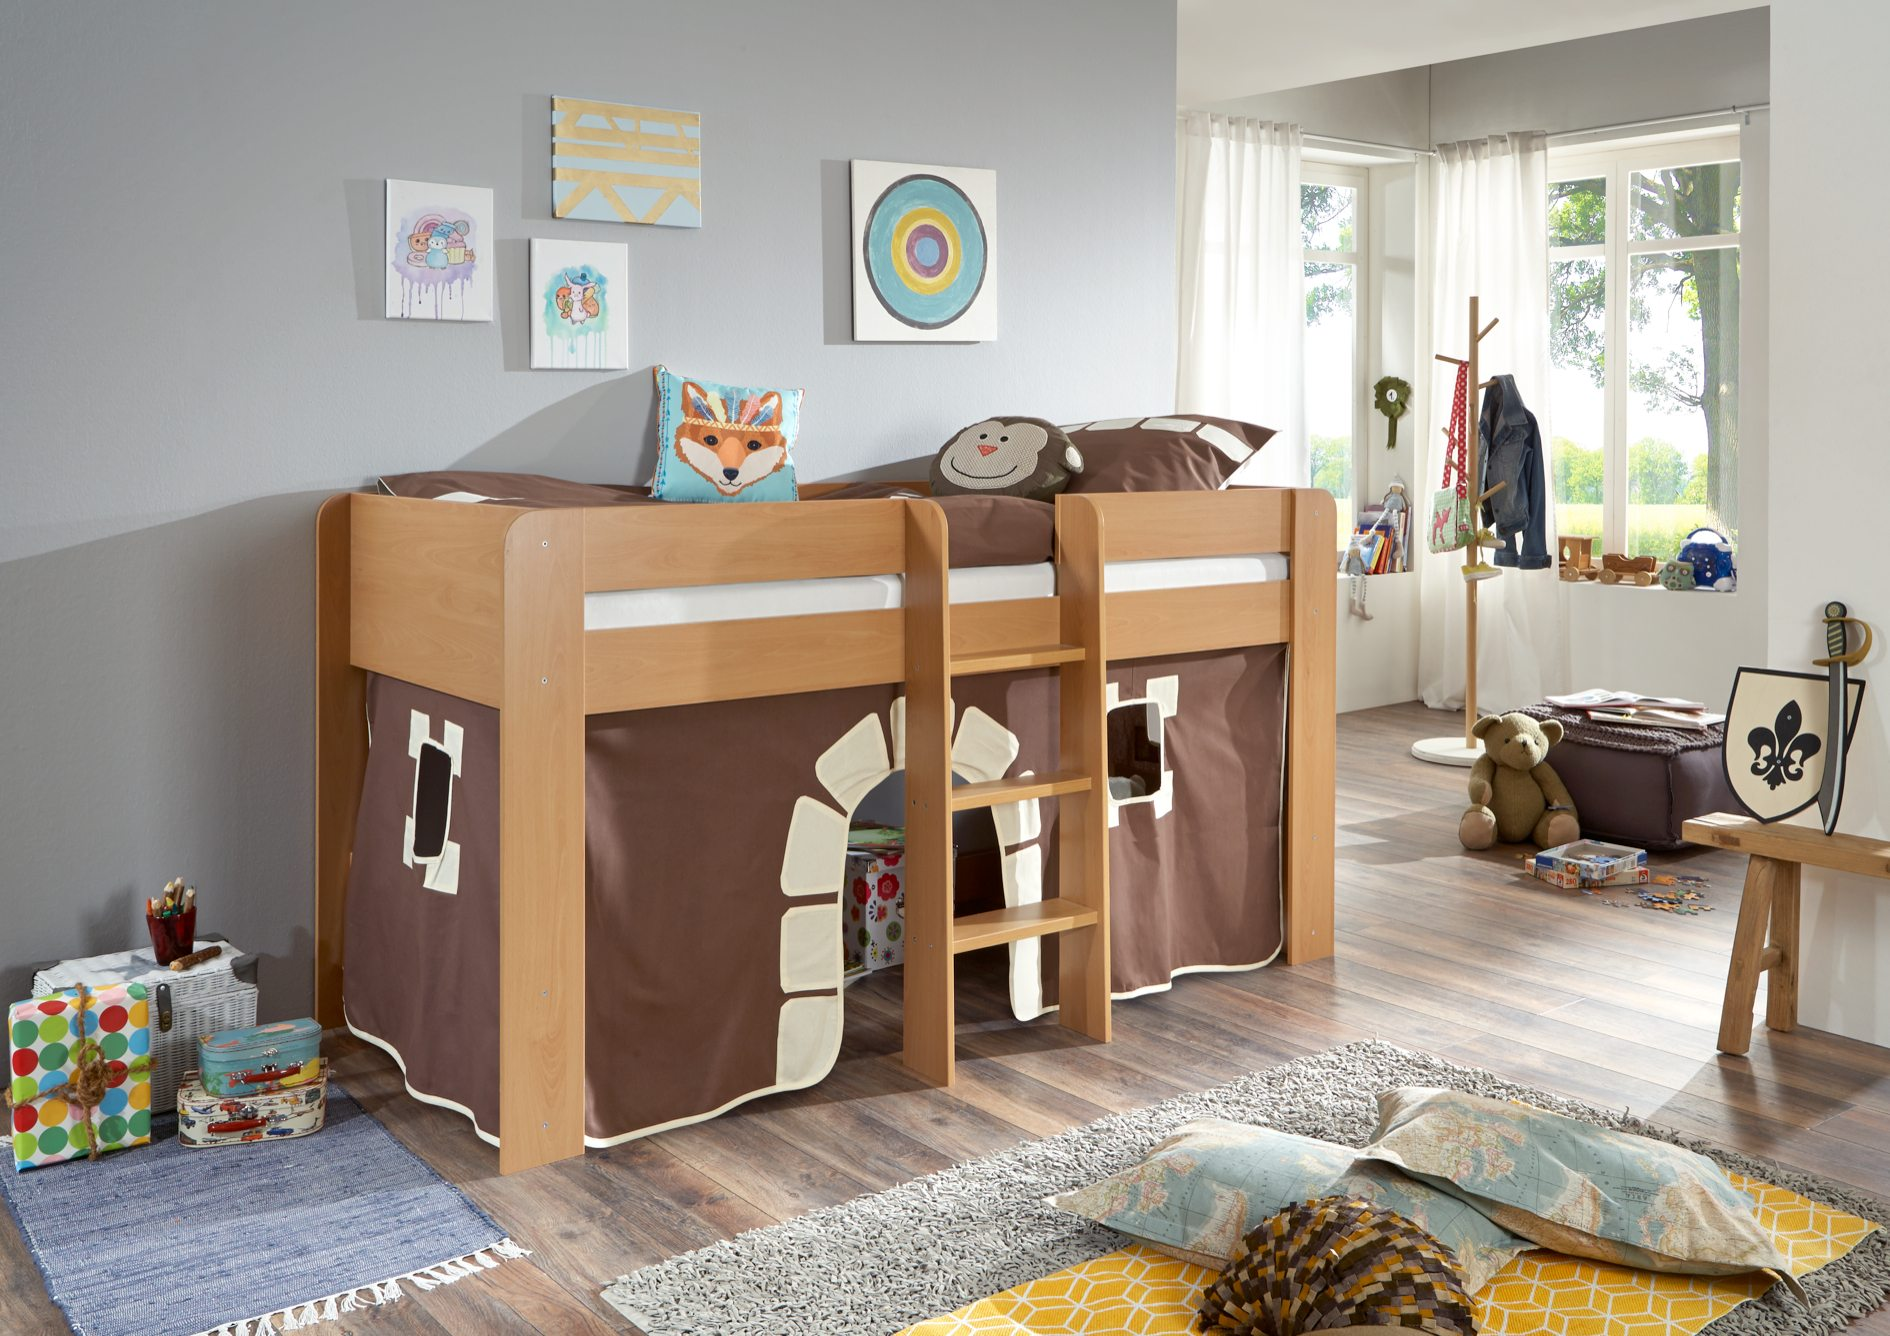 hochbett andi 2 kinderbett spielbett halbhohes bett buche stoffset lila wei kids teens betten. Black Bedroom Furniture Sets. Home Design Ideas